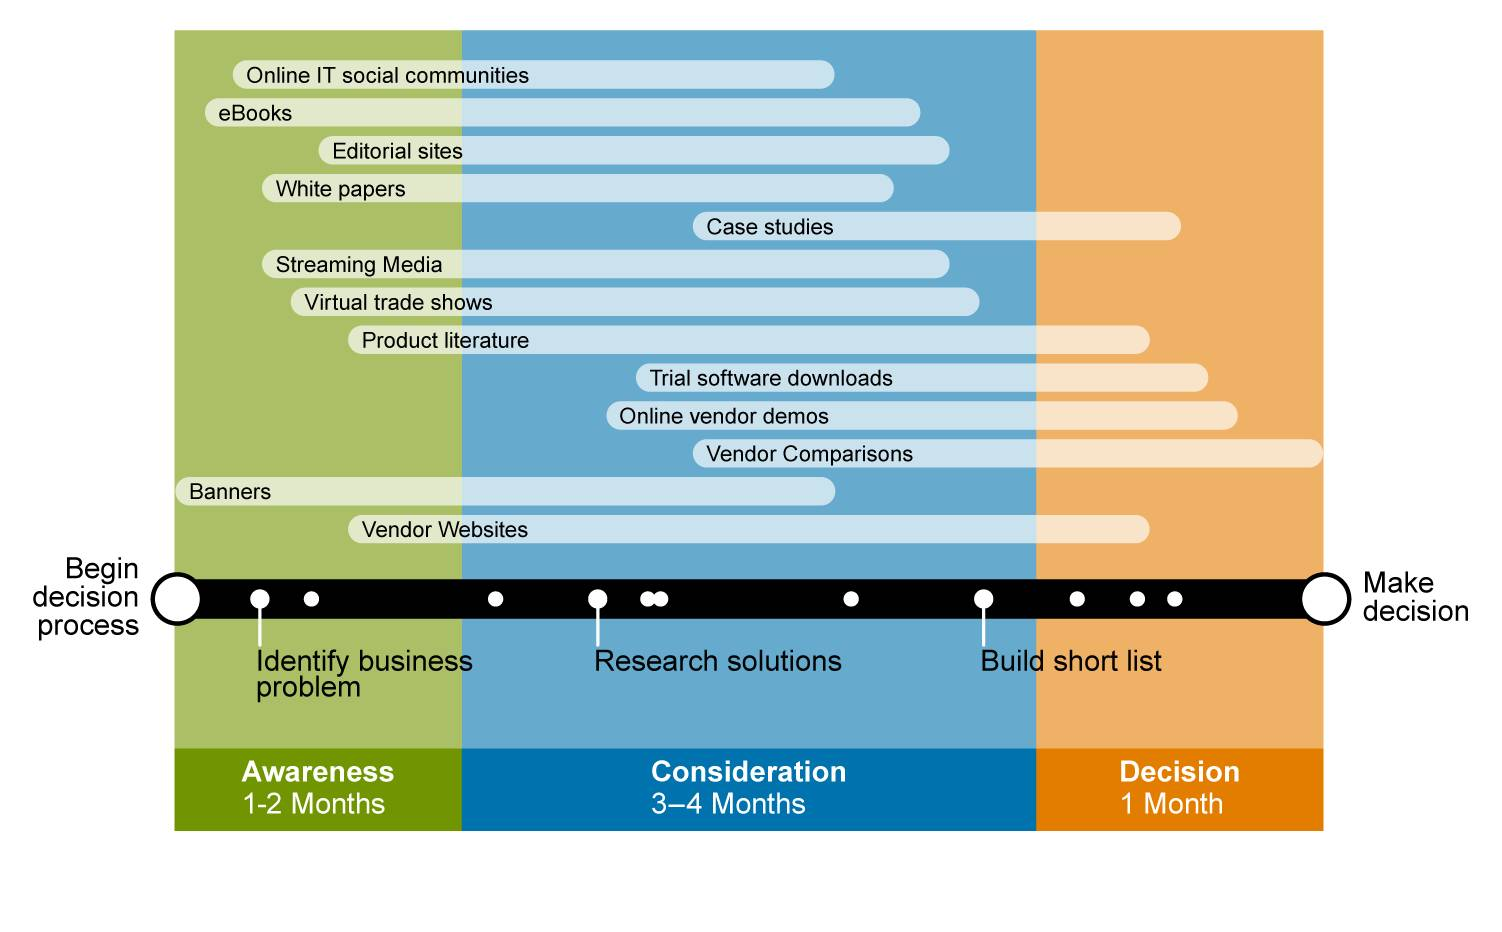 TechTarget_Content_Format_by_Stage.jpg